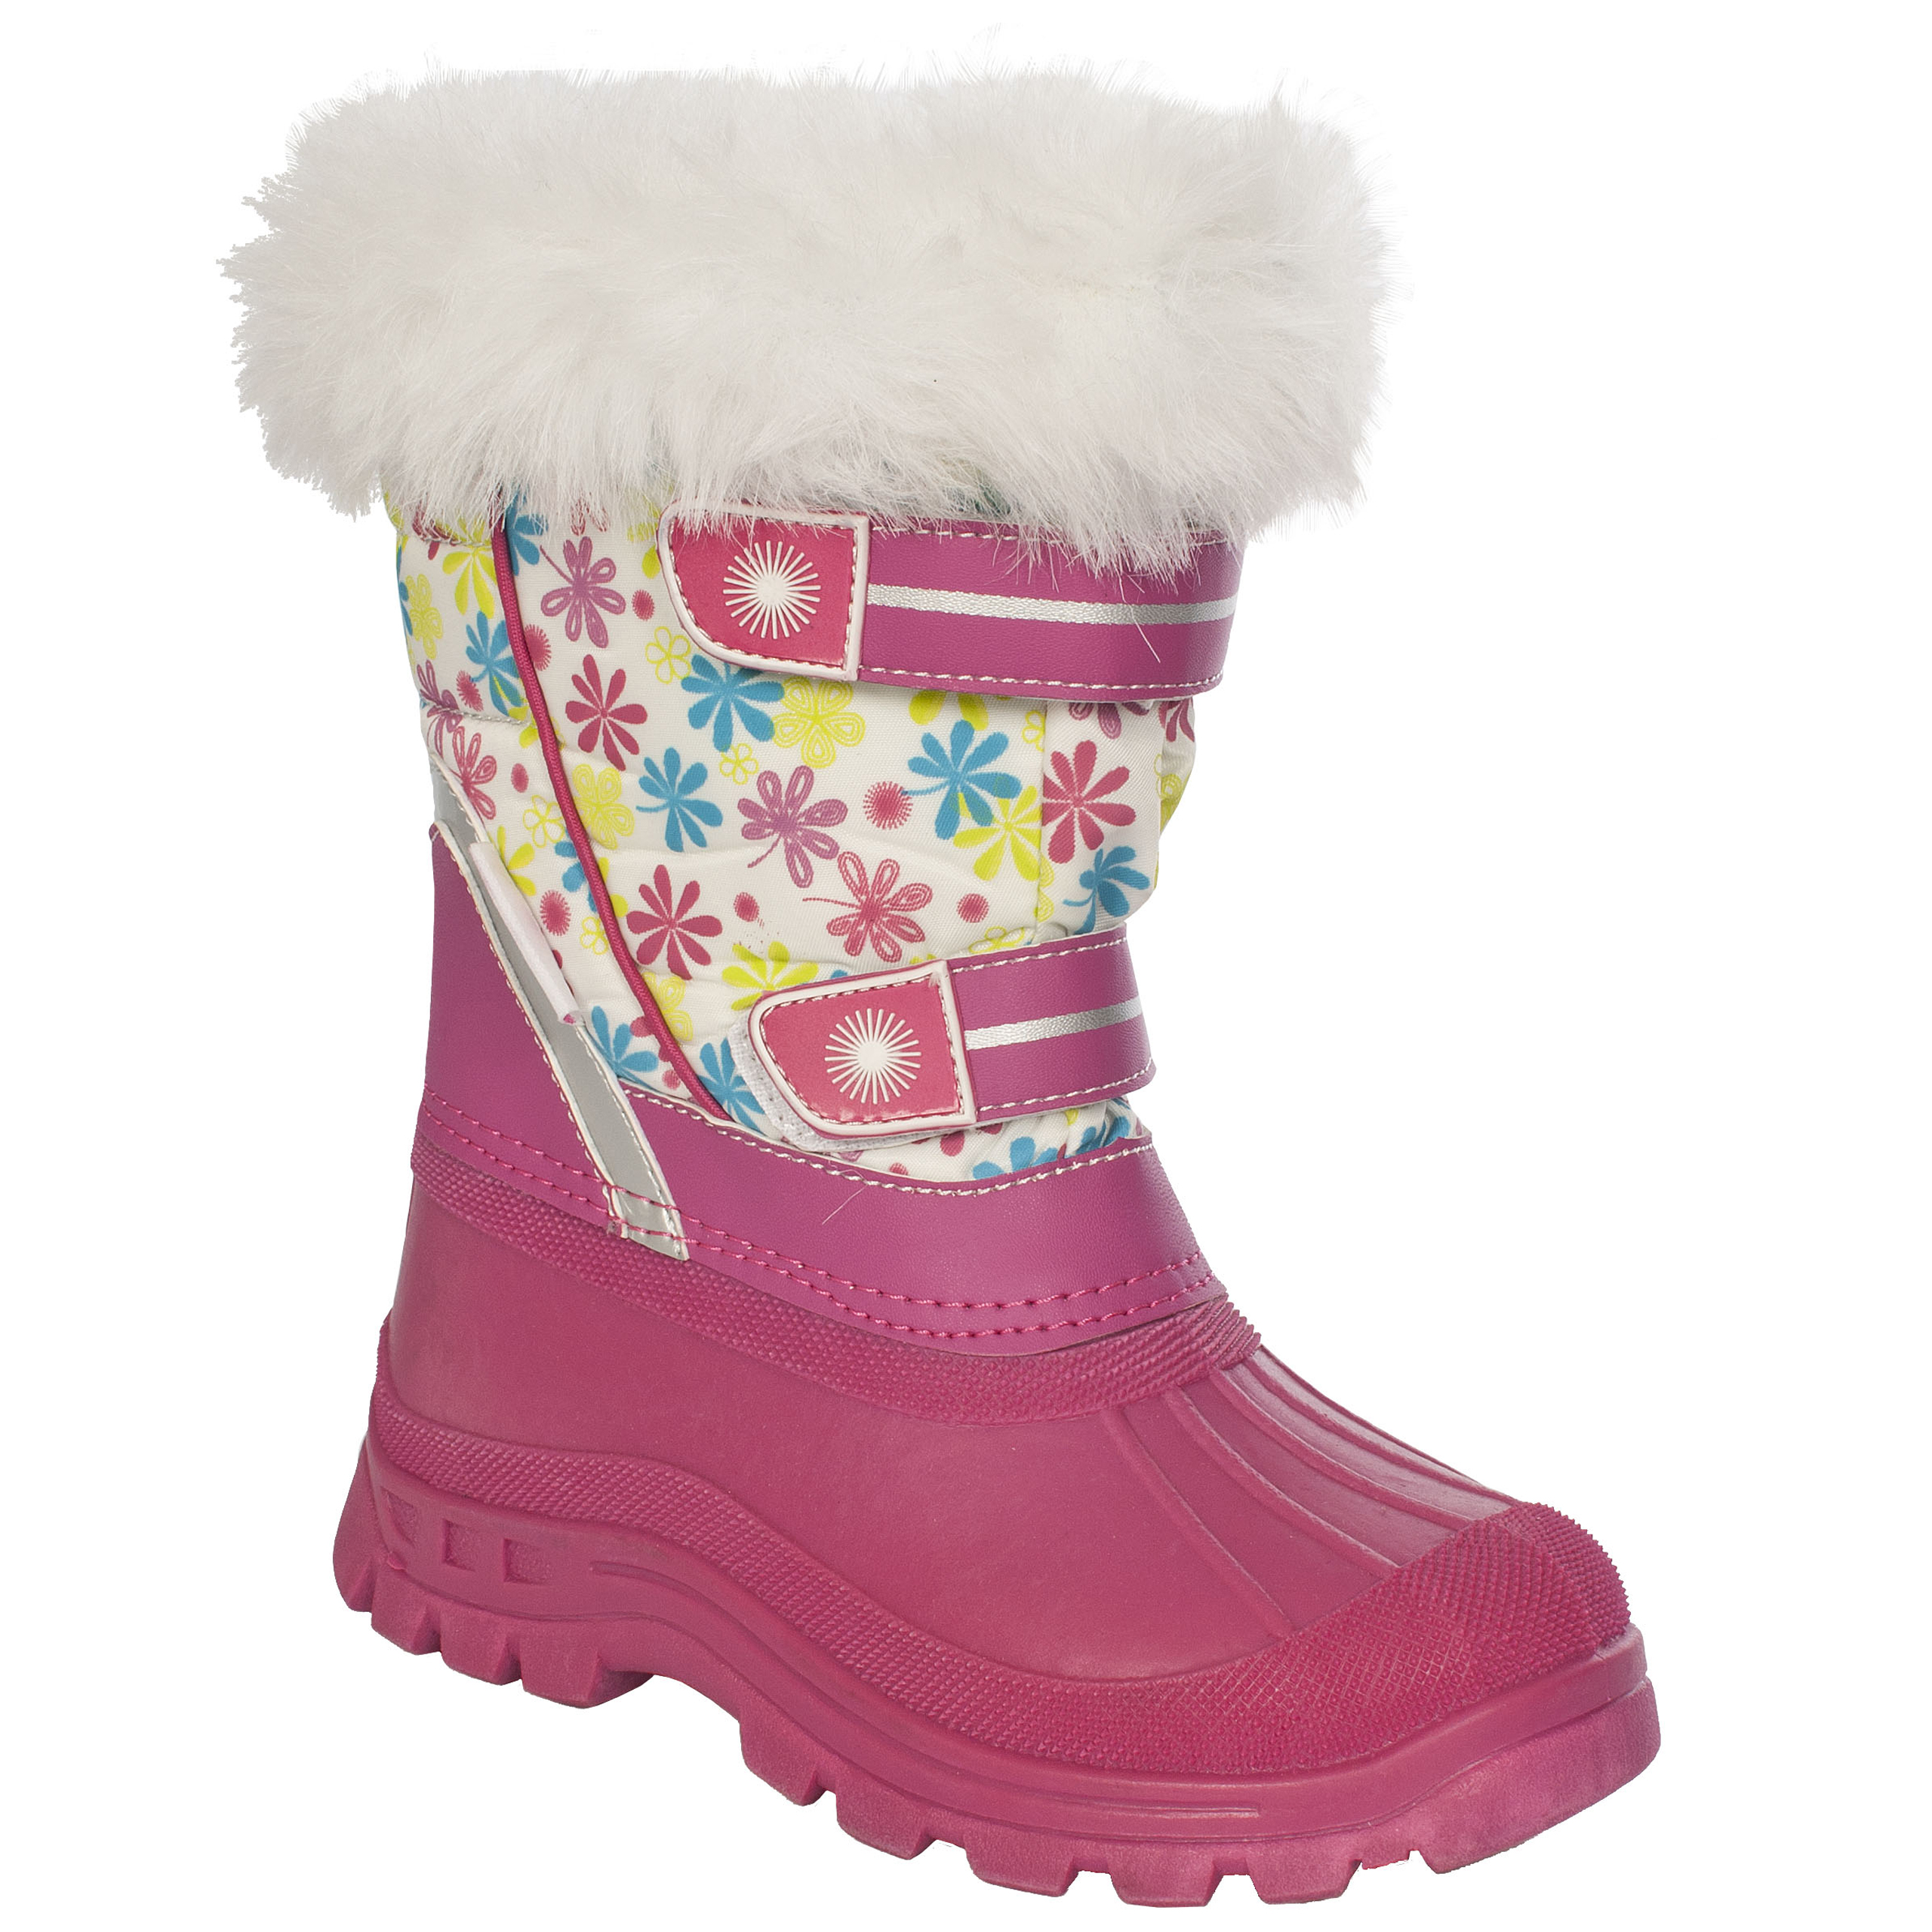 Snow Boots For Girl | Santa Barbara Institute for Consciousness ...